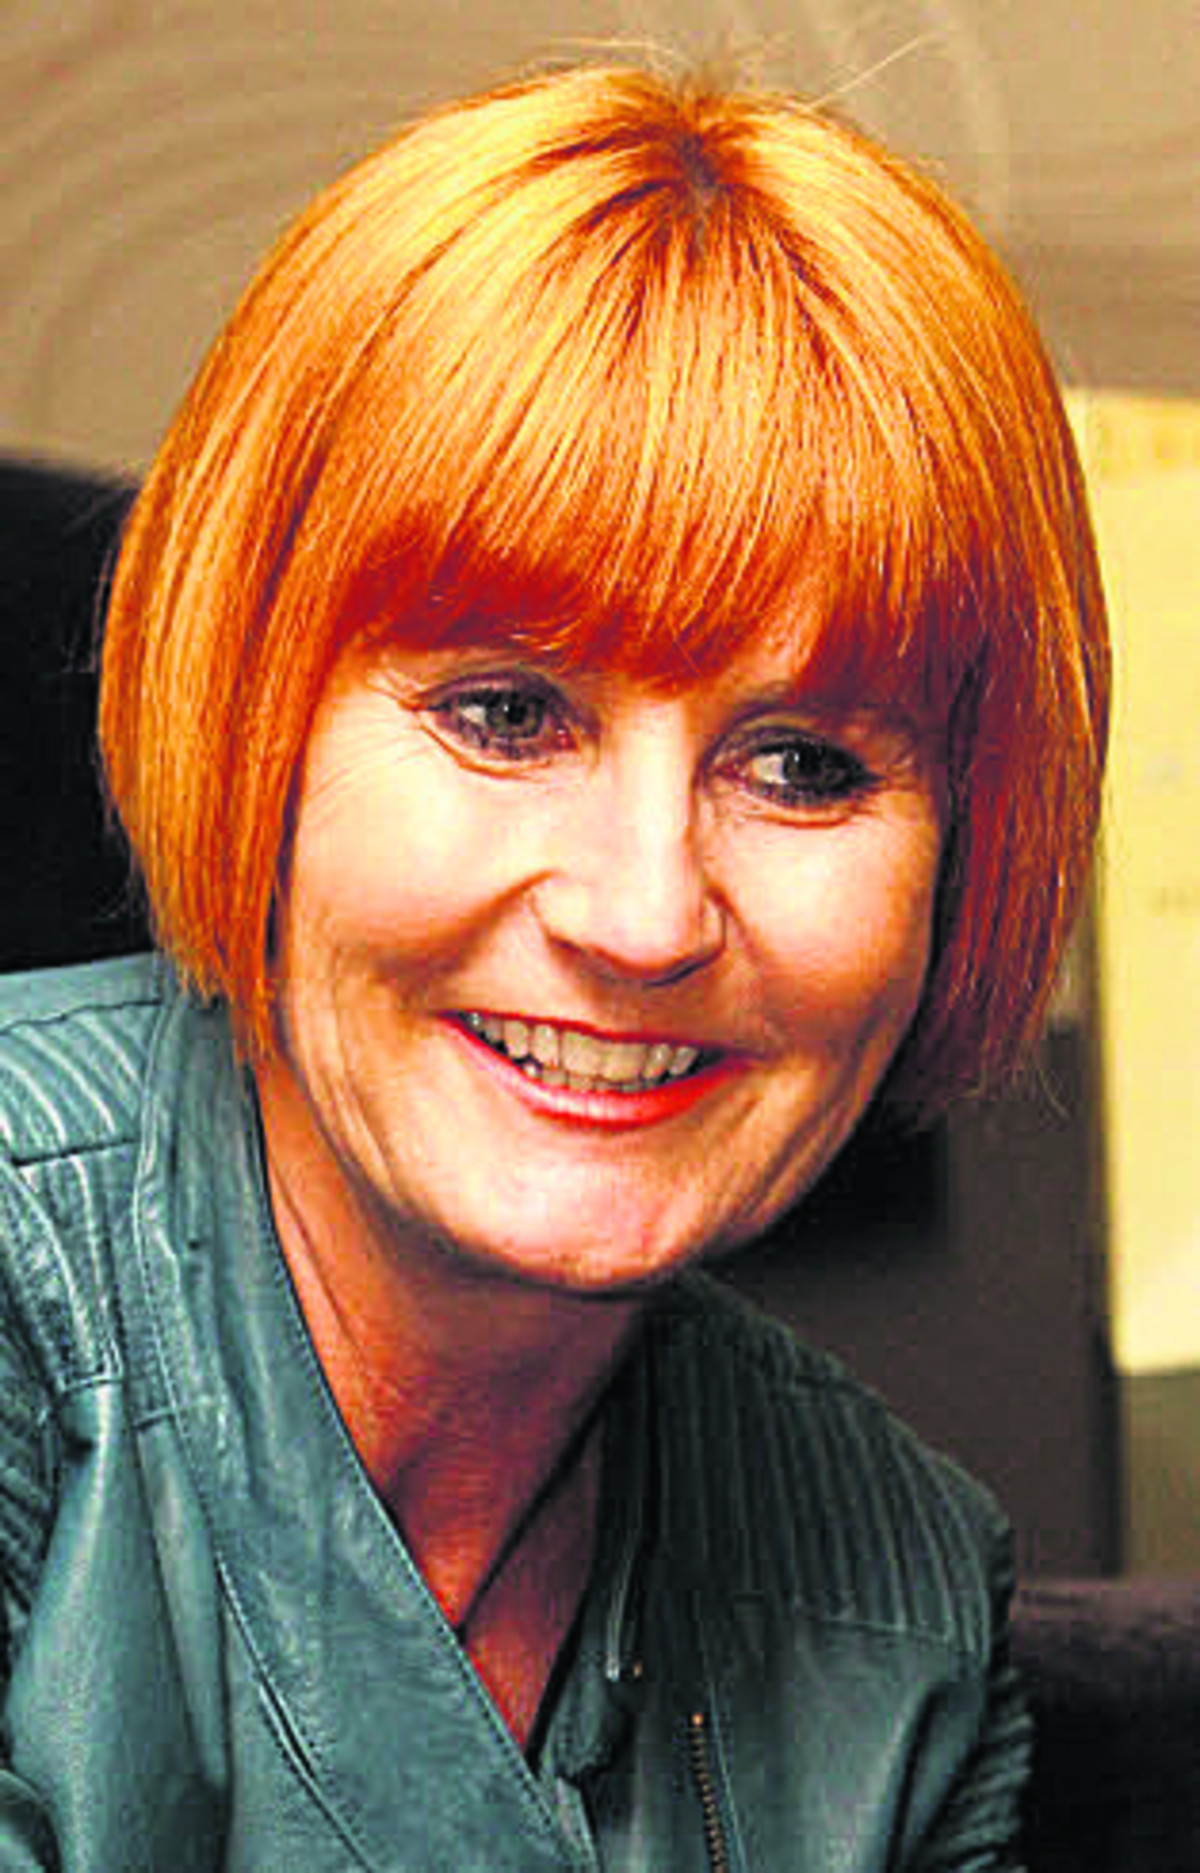 Mary Portas came up with the 'Portas pilot areas' to help rejuvenate shopping areas of towns across the country.